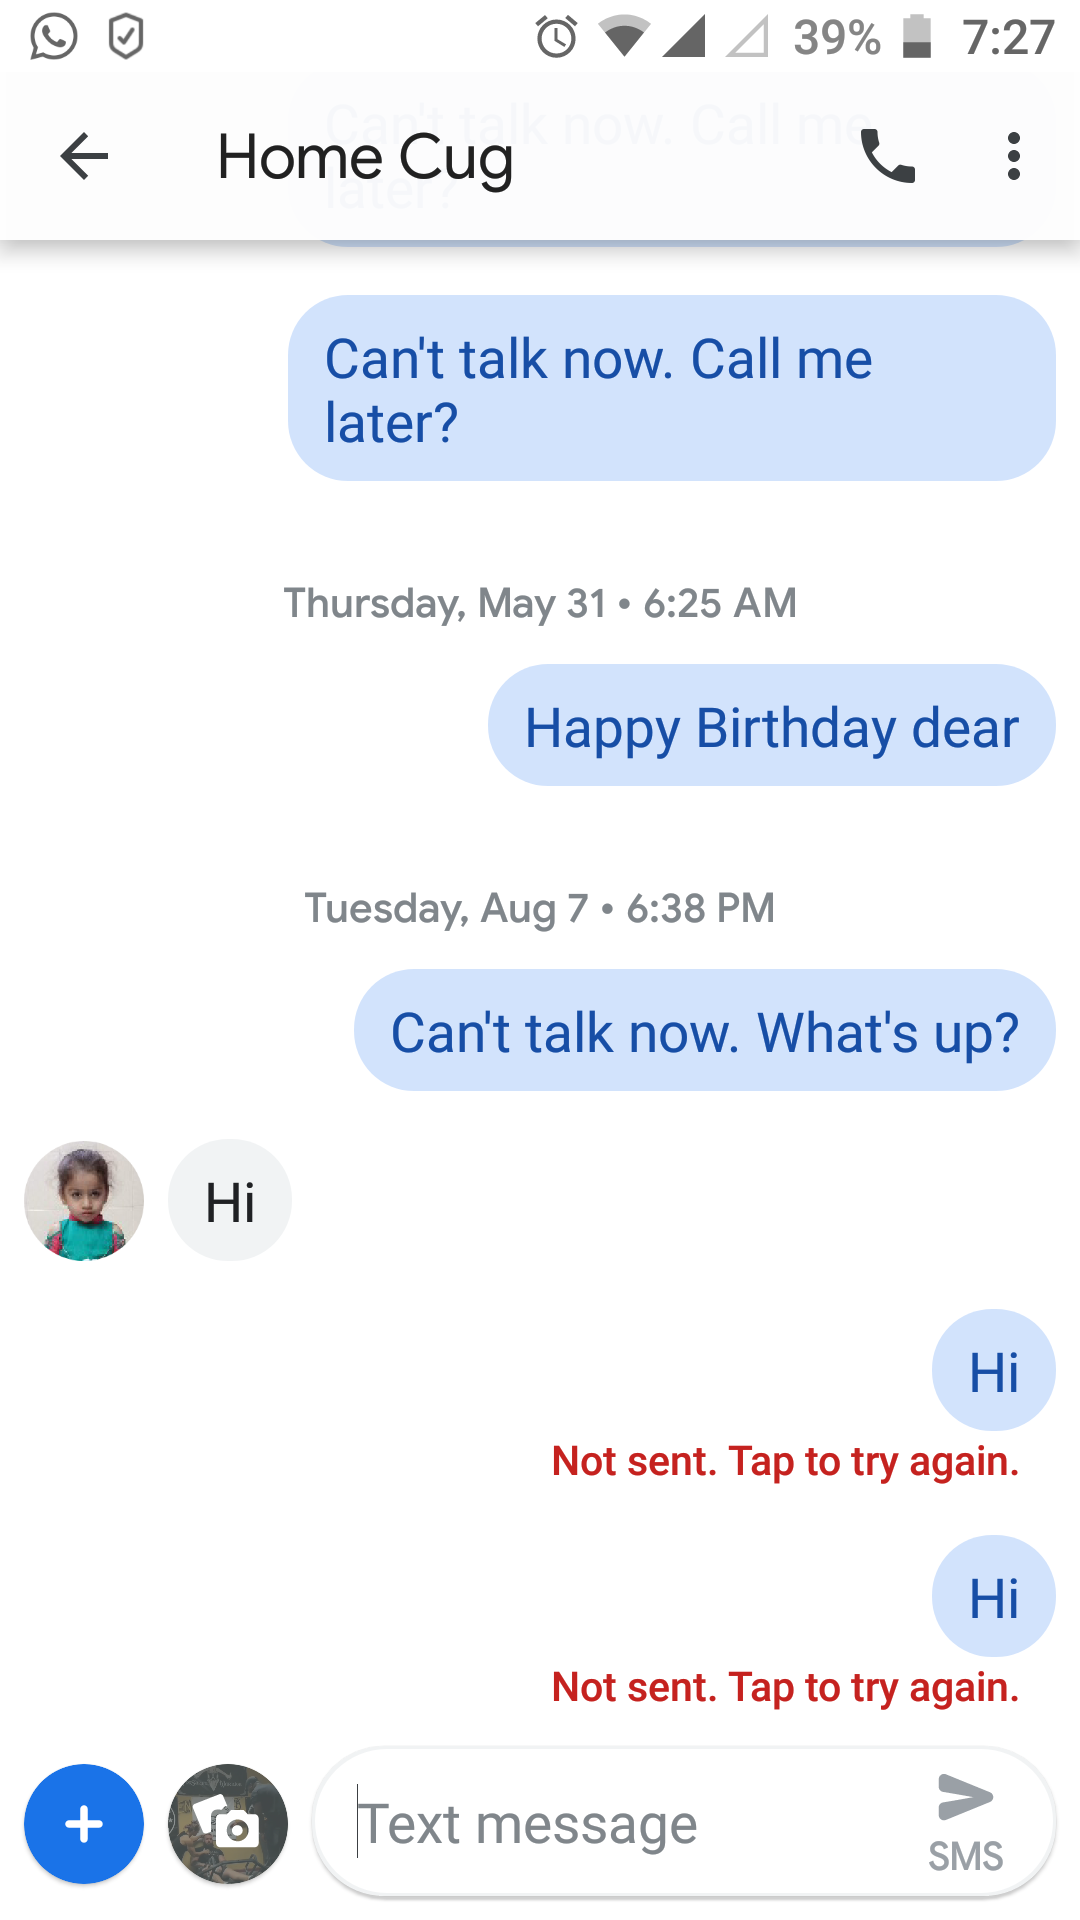 I can't send messages, only received - Messages Help